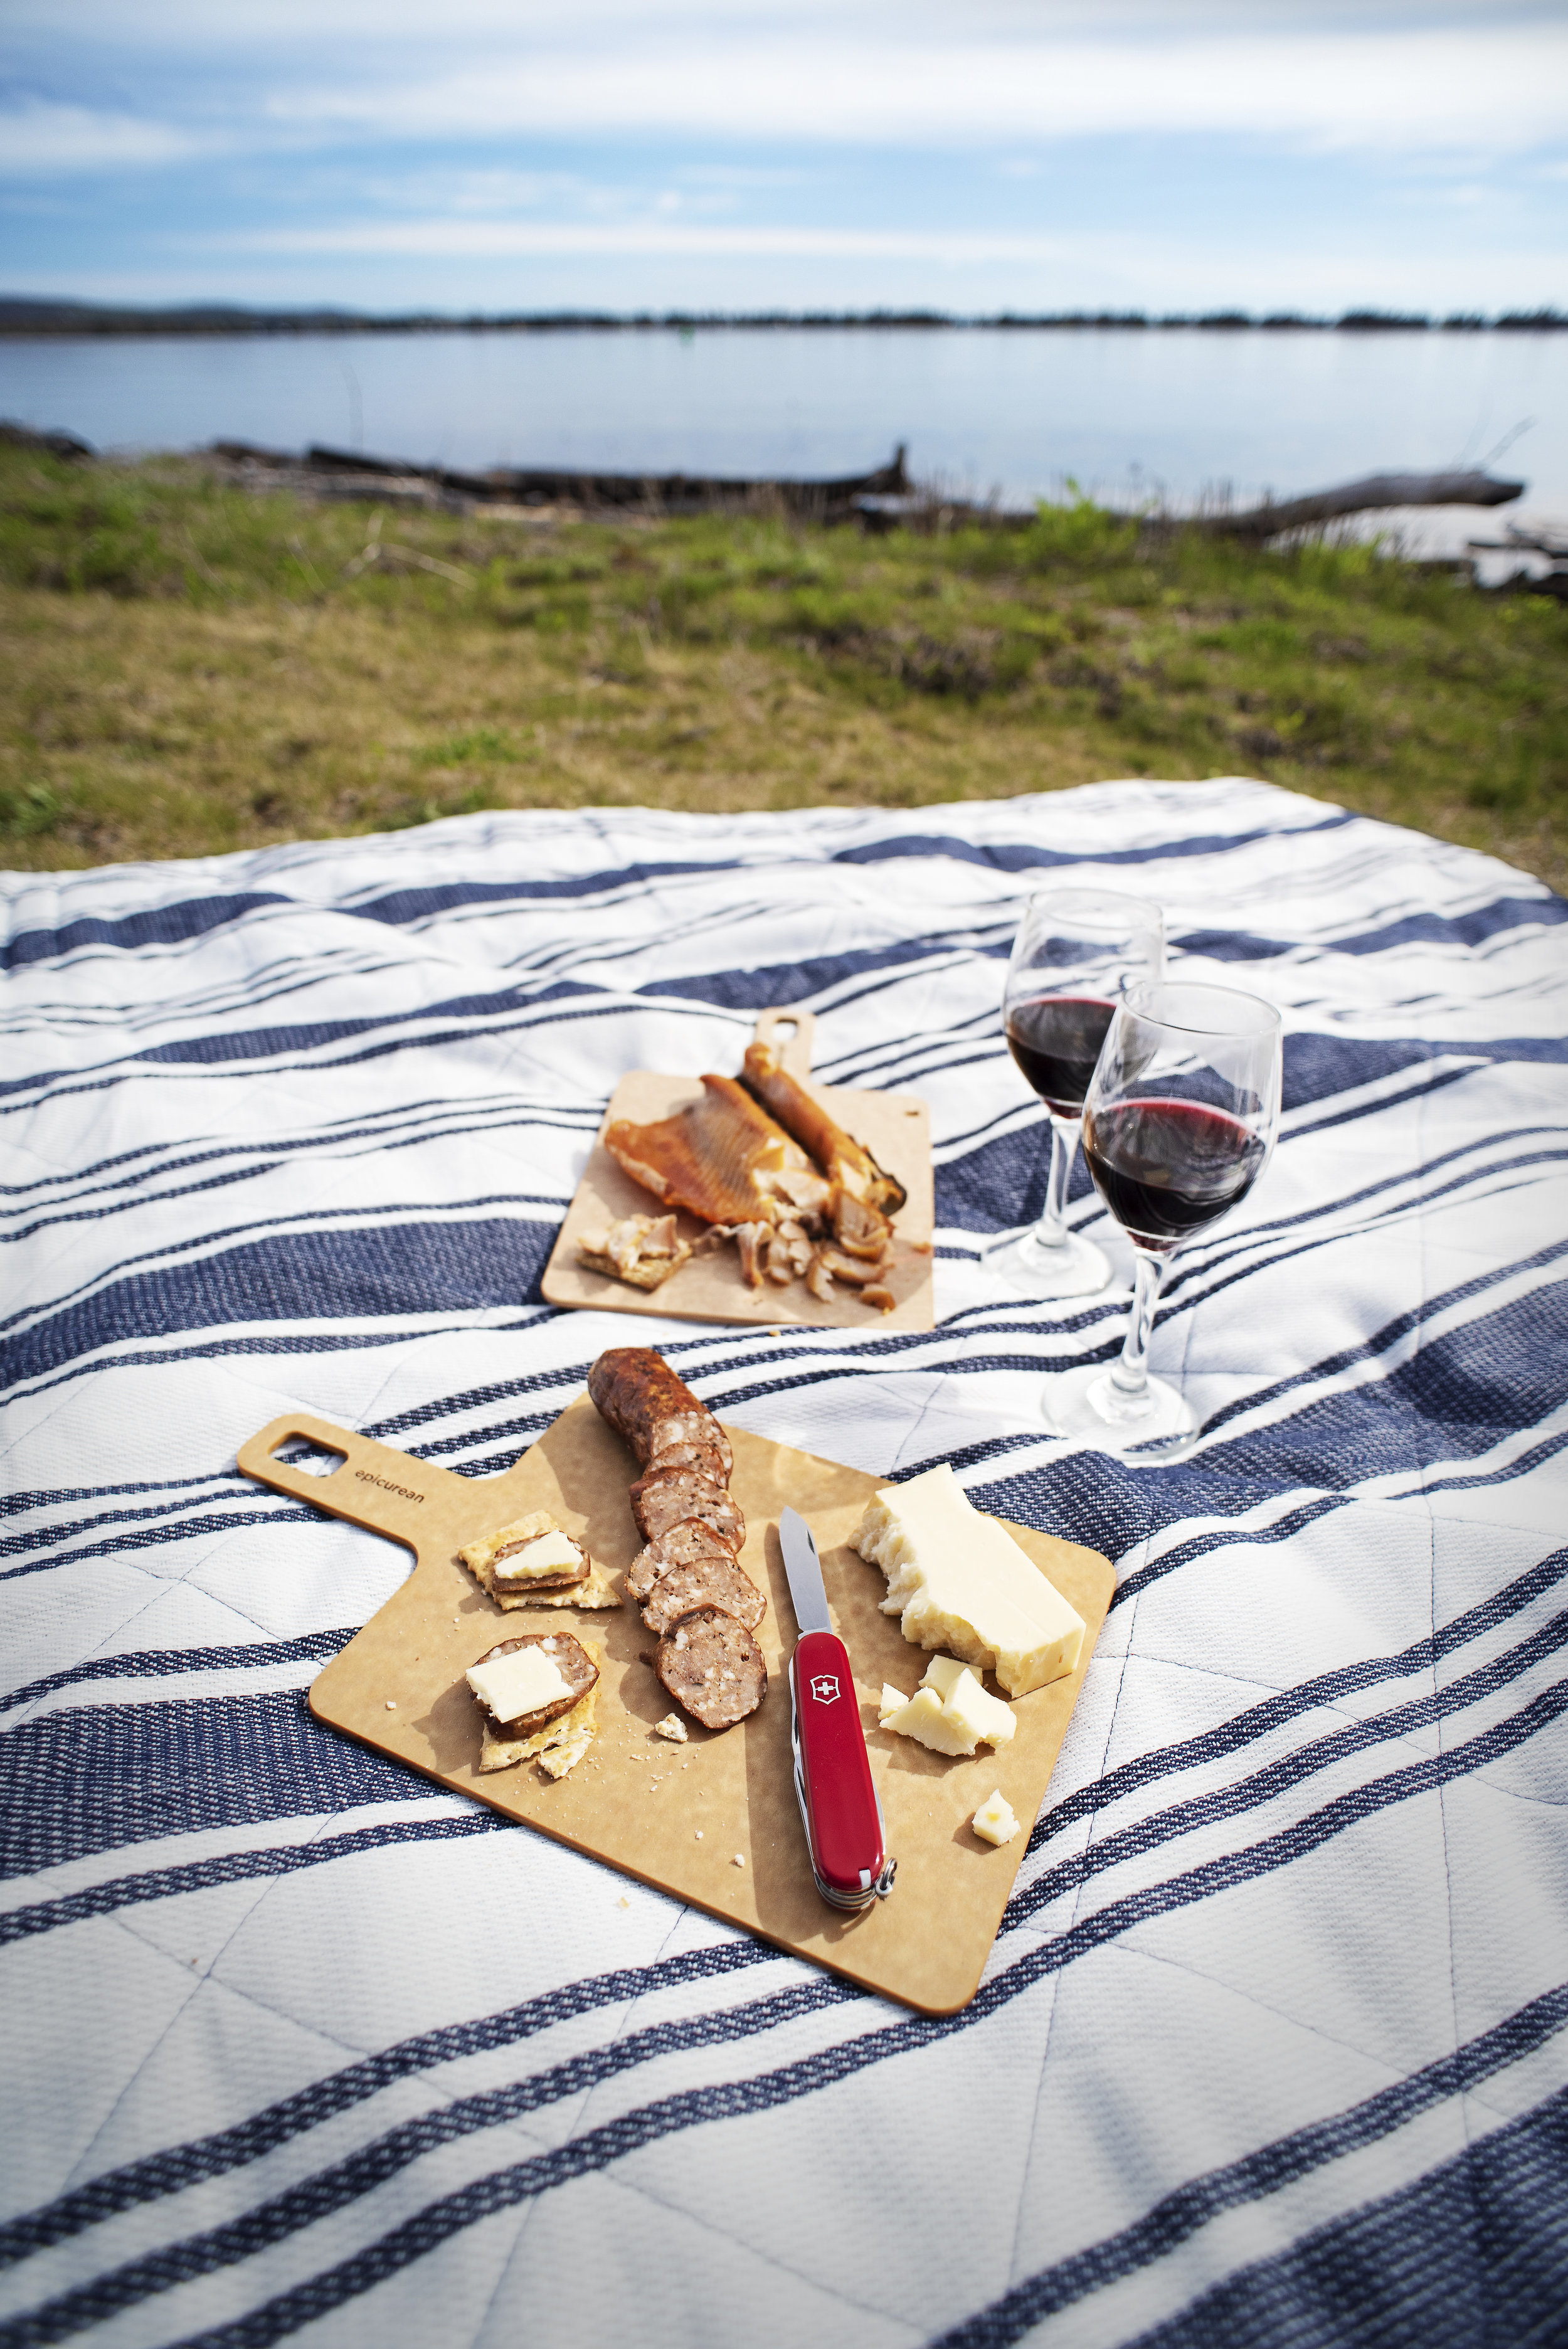 "Picnic Combo SetOnly $27.99 - 9"" x 7.5"" Handy Board in NaturalCamper Swiss Army KnifeAvailable while supplies last, at the Epicurean Outlet!"